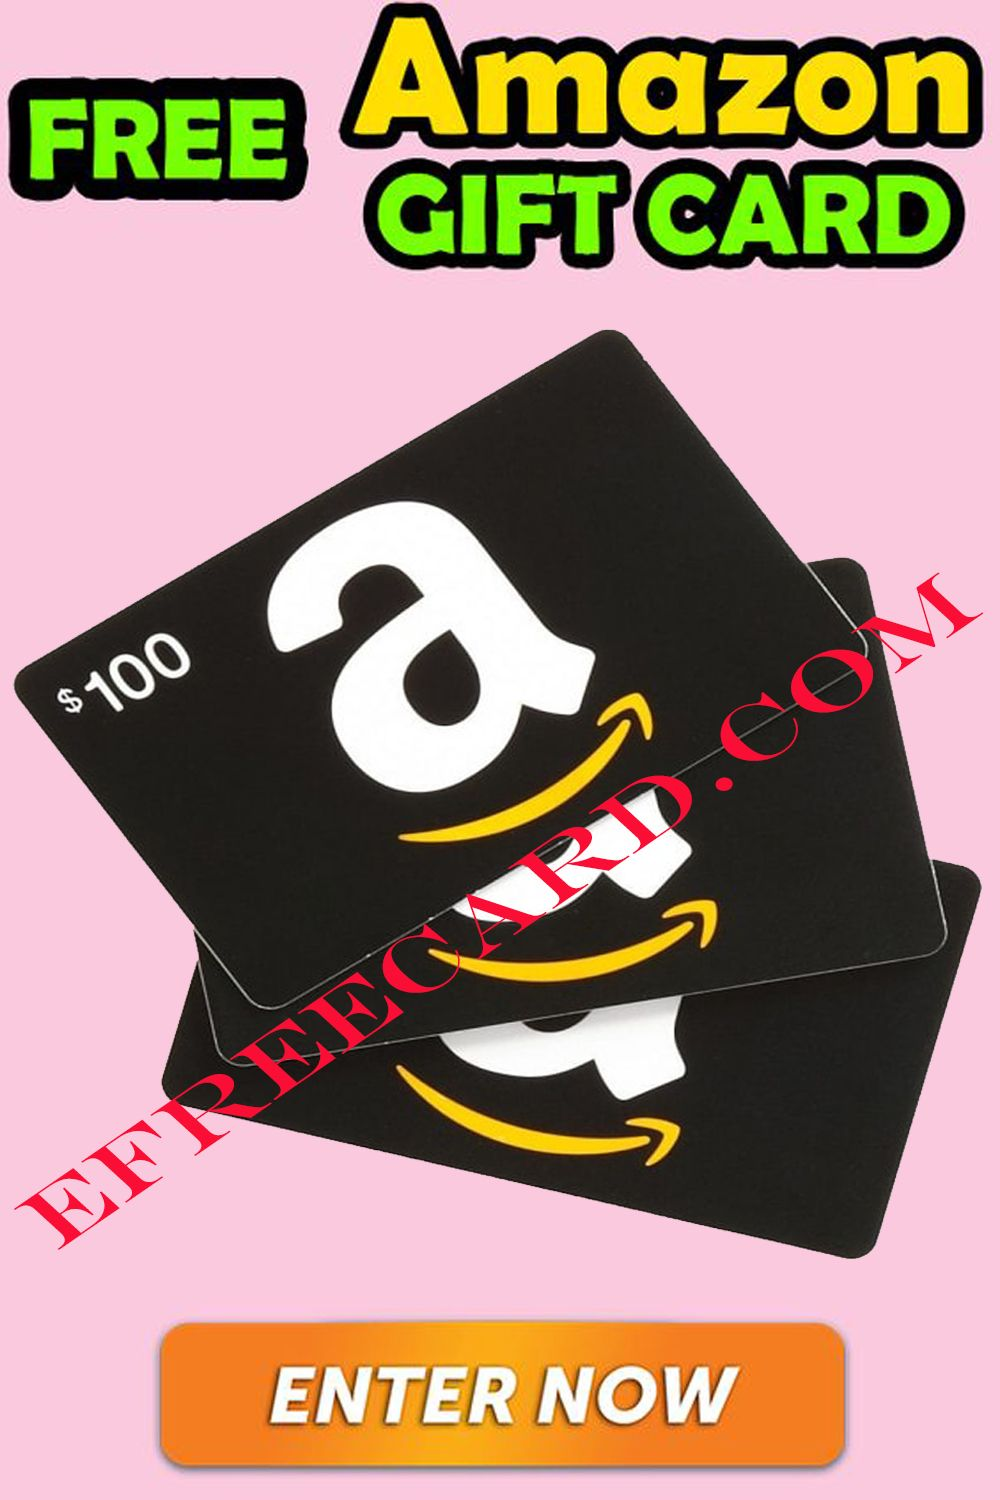 Photo of Amazon Free Gift Card Code Generator